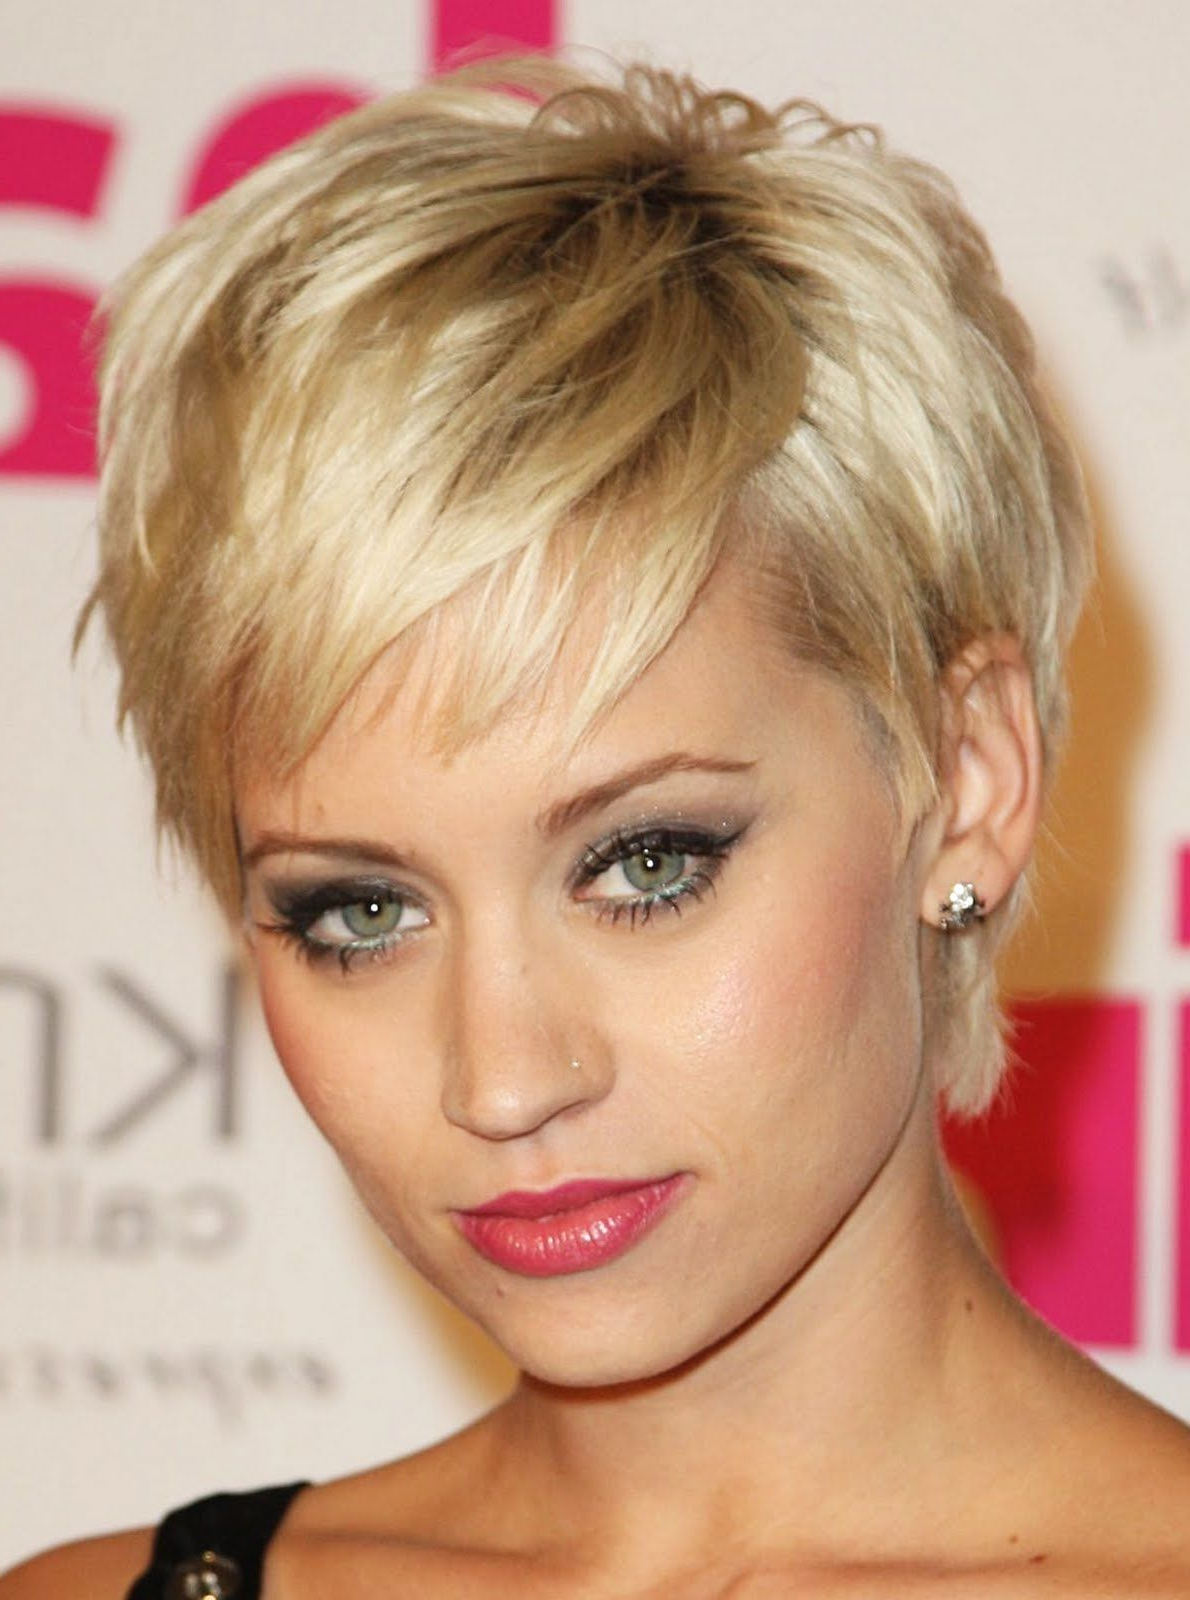 Short Hairstyles For Oval Faces | Hair Cut | Pinterest | Short Hair With Regard To Short Haircuts For Thick Hair Long Face (View 5 of 25)